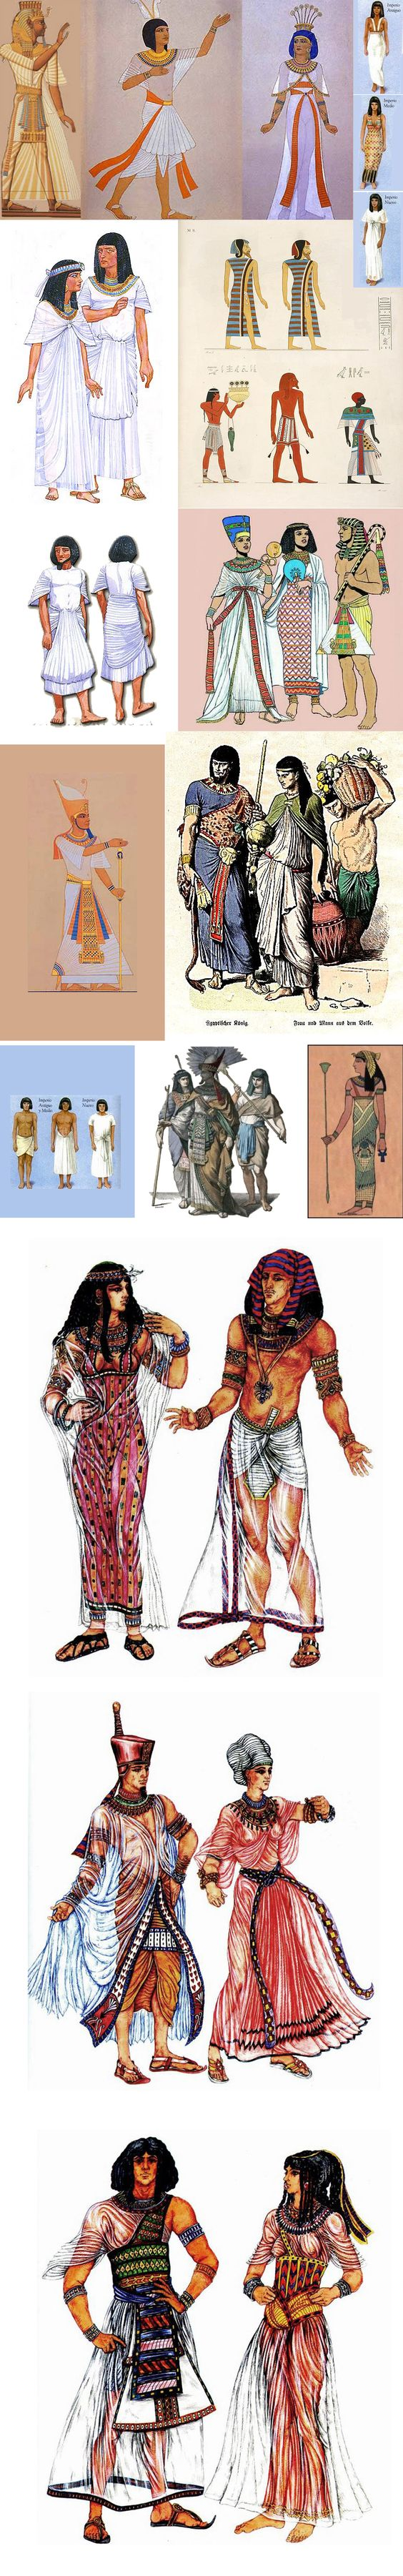 Egypt, egyptian, pharaoh, queen: